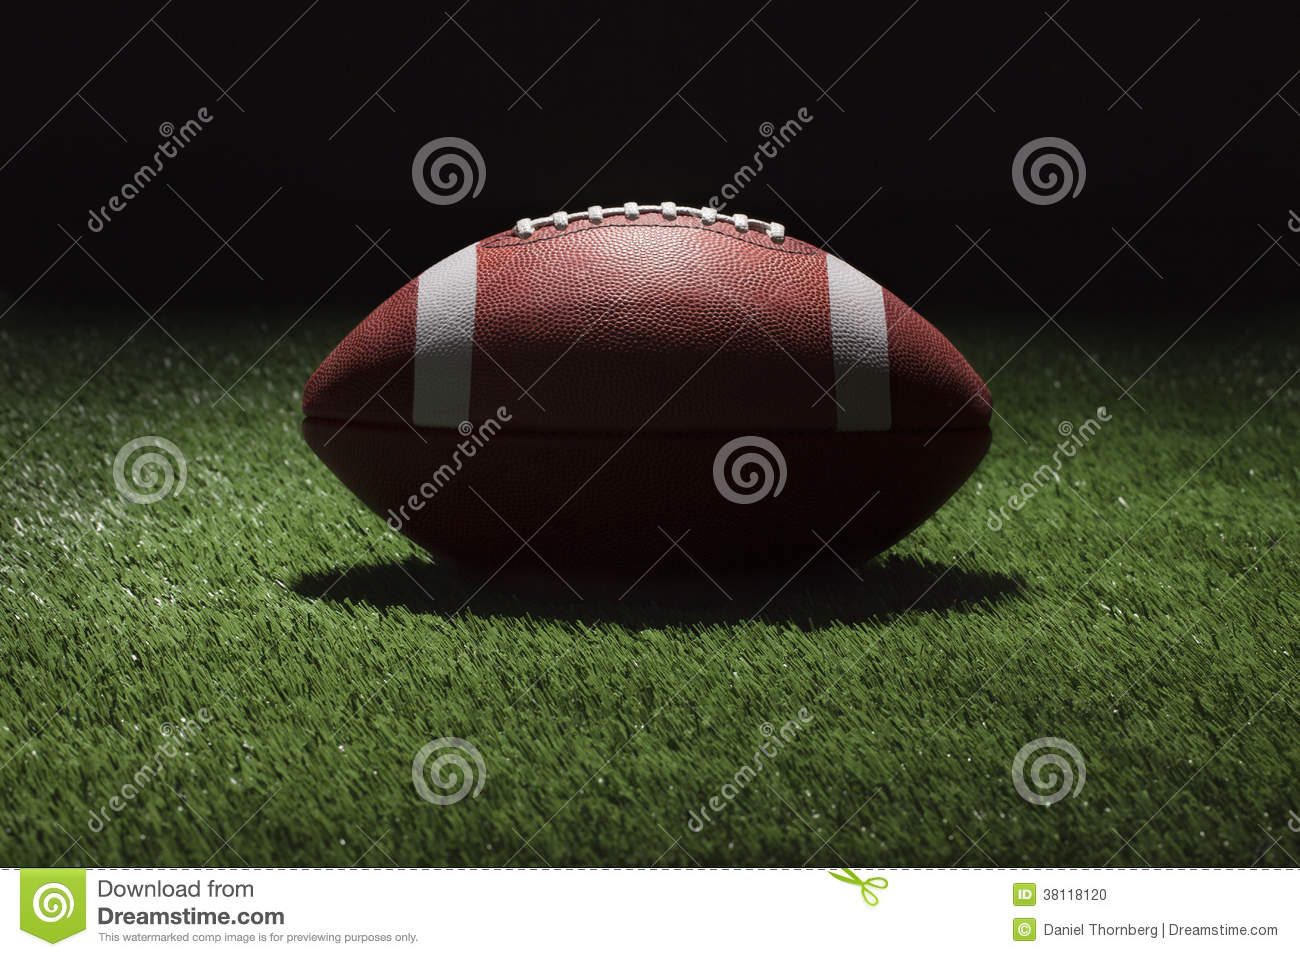 College football on grass field at night with spot lighting